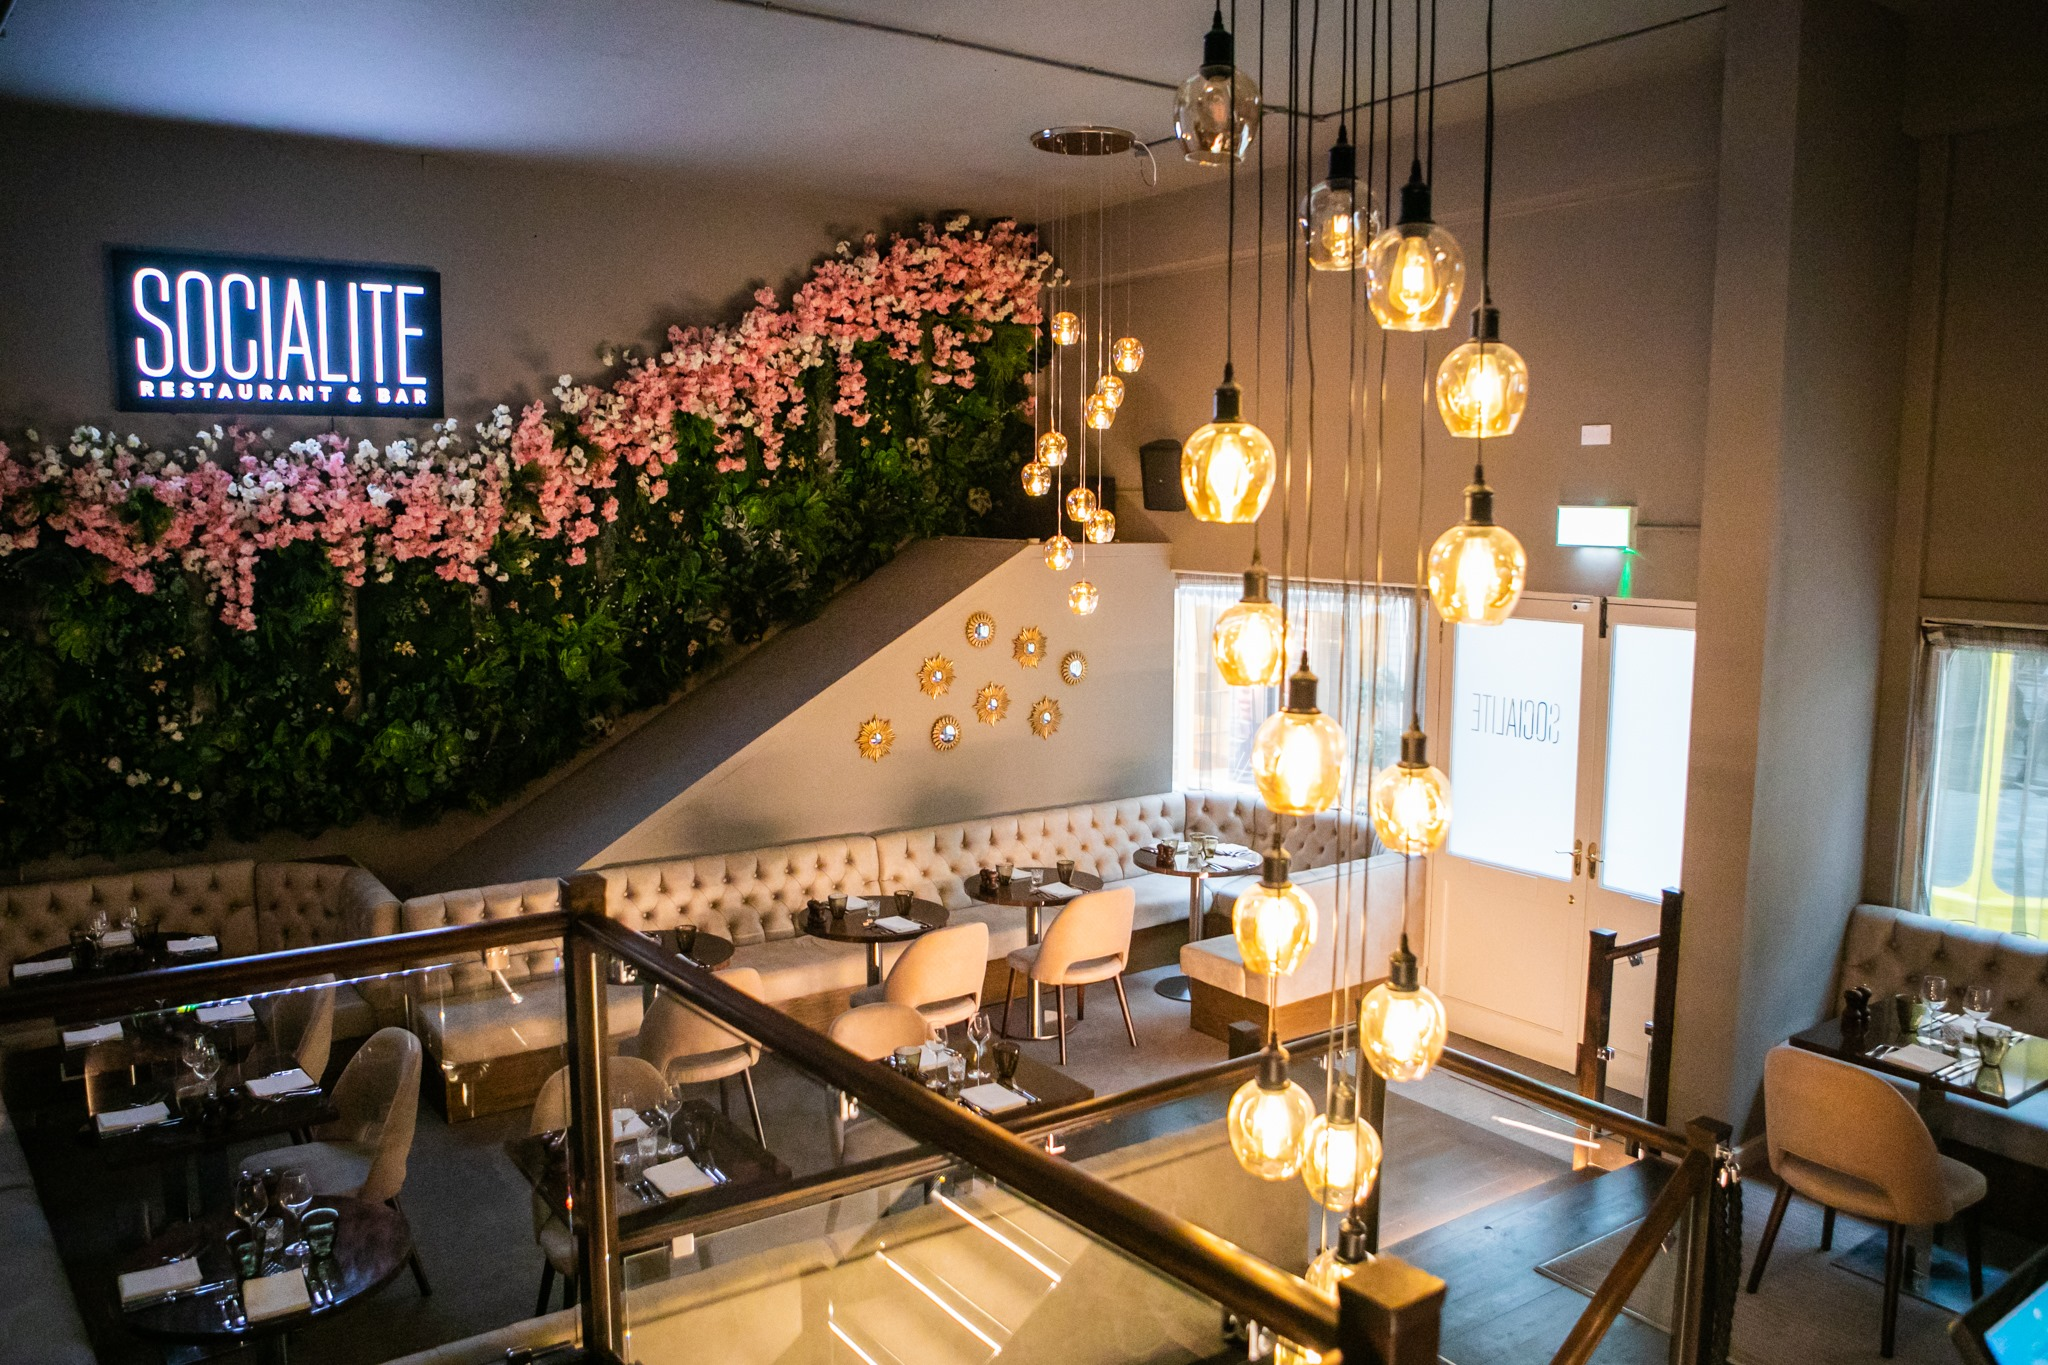 interior of socialite, decorative plants with pink flowers hanging on the wall, a white light logo attached to wall, white charis and brown tables, beautiful lights hanging of celiling